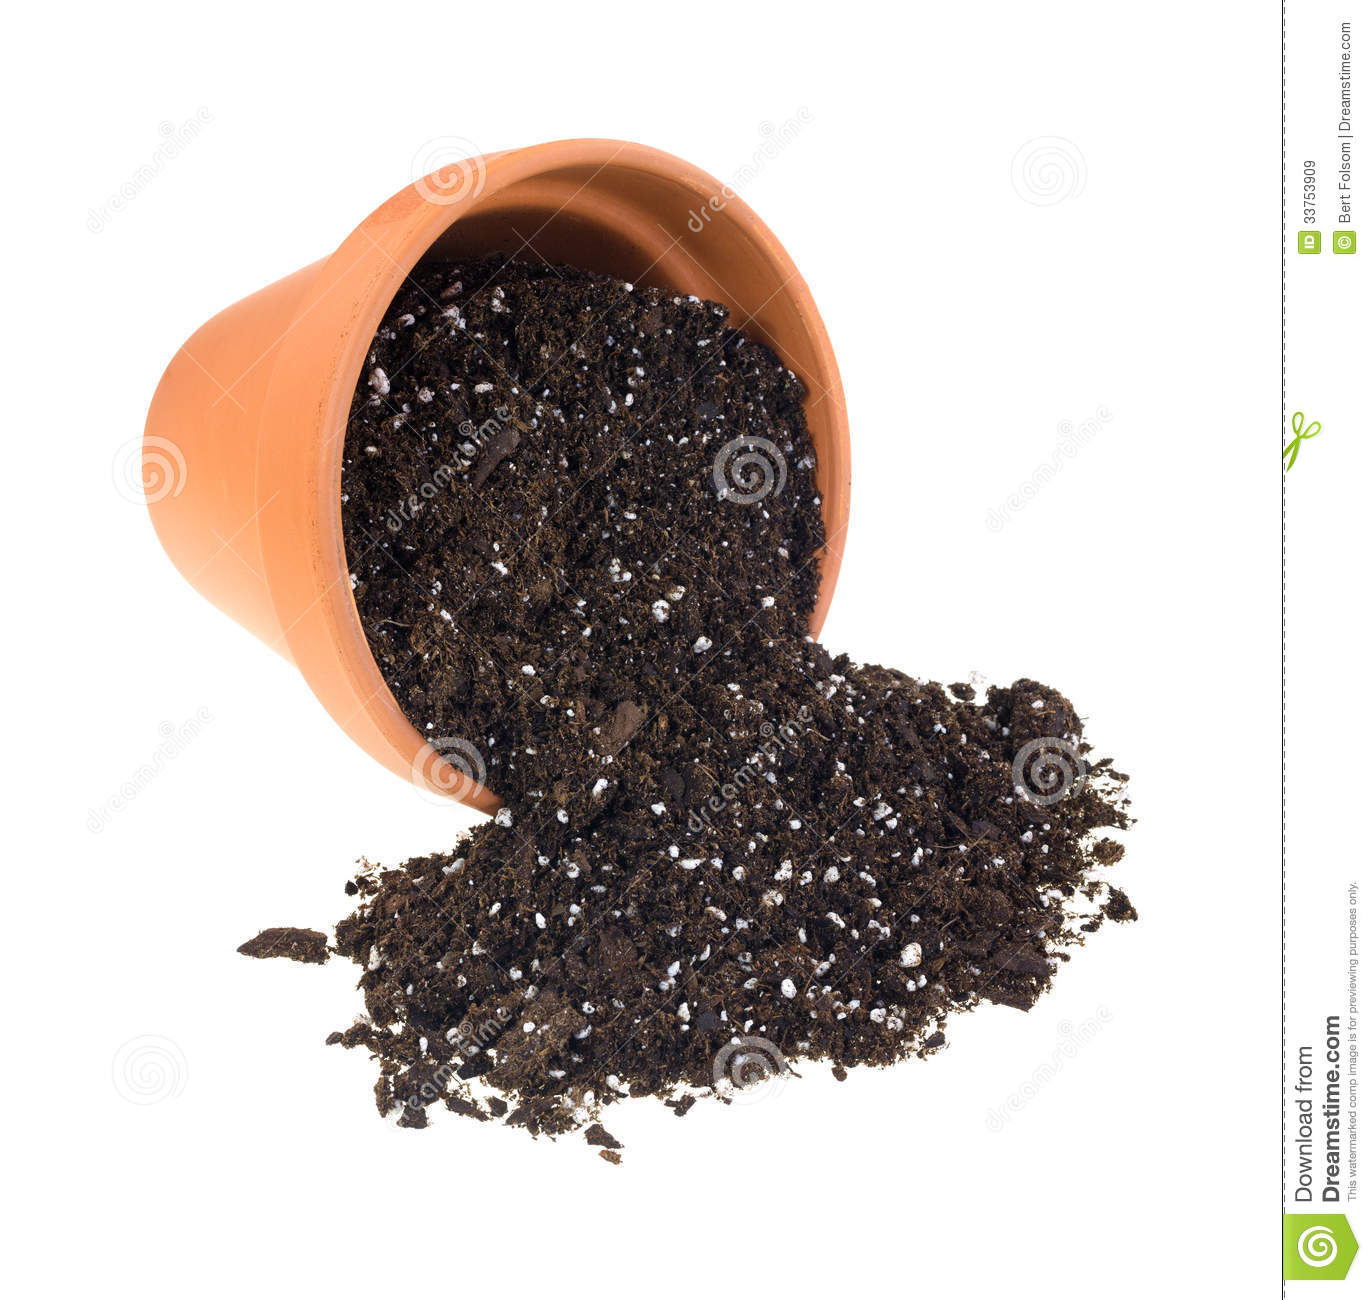 Organic Potting Soil Spilling From Cay Pot Royalty Free Stock Images